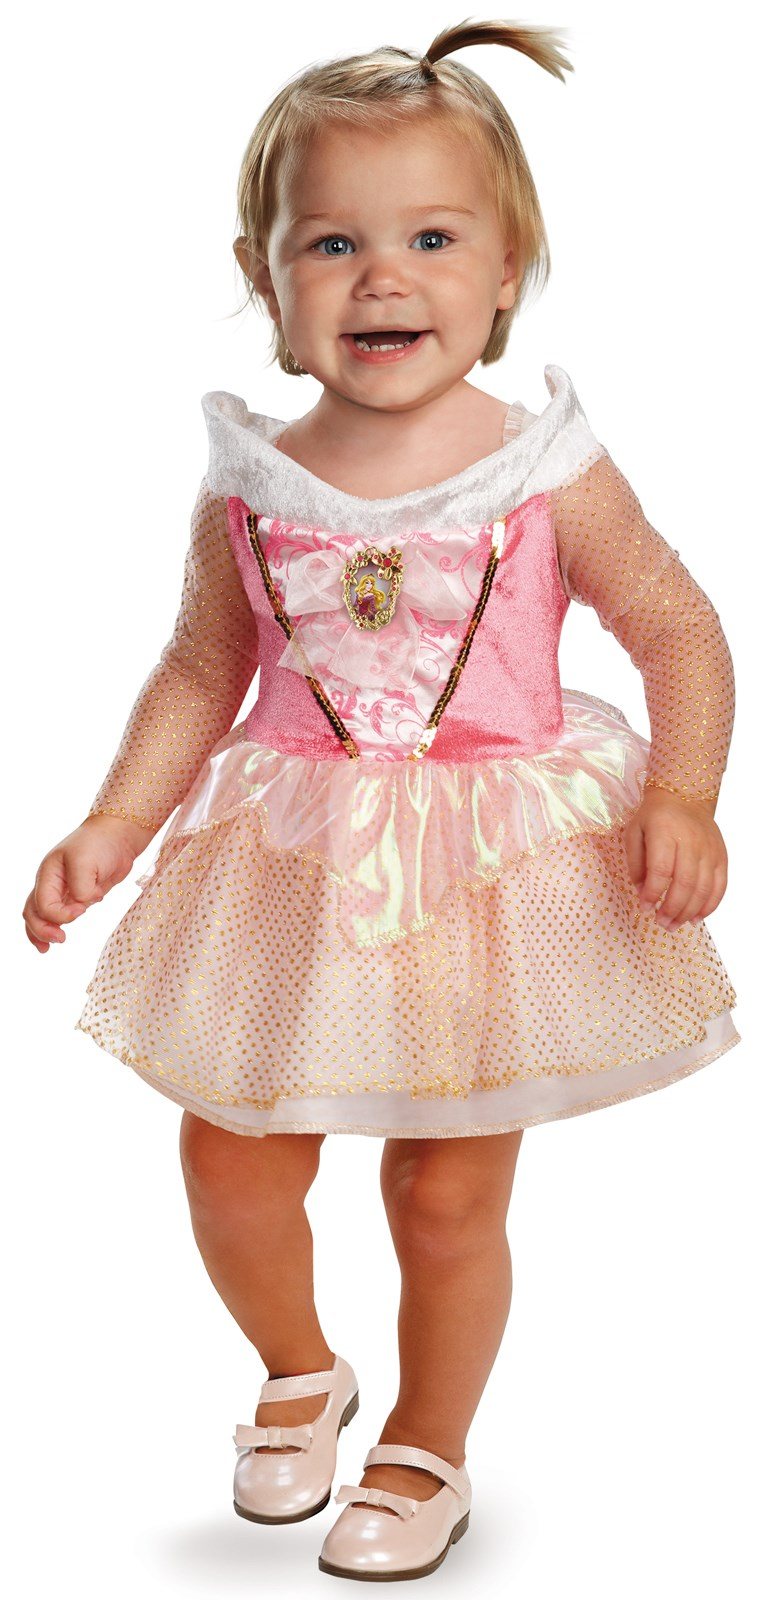 Sleeping Beauty Aurora Infant Costume Infant (12-18 Months)